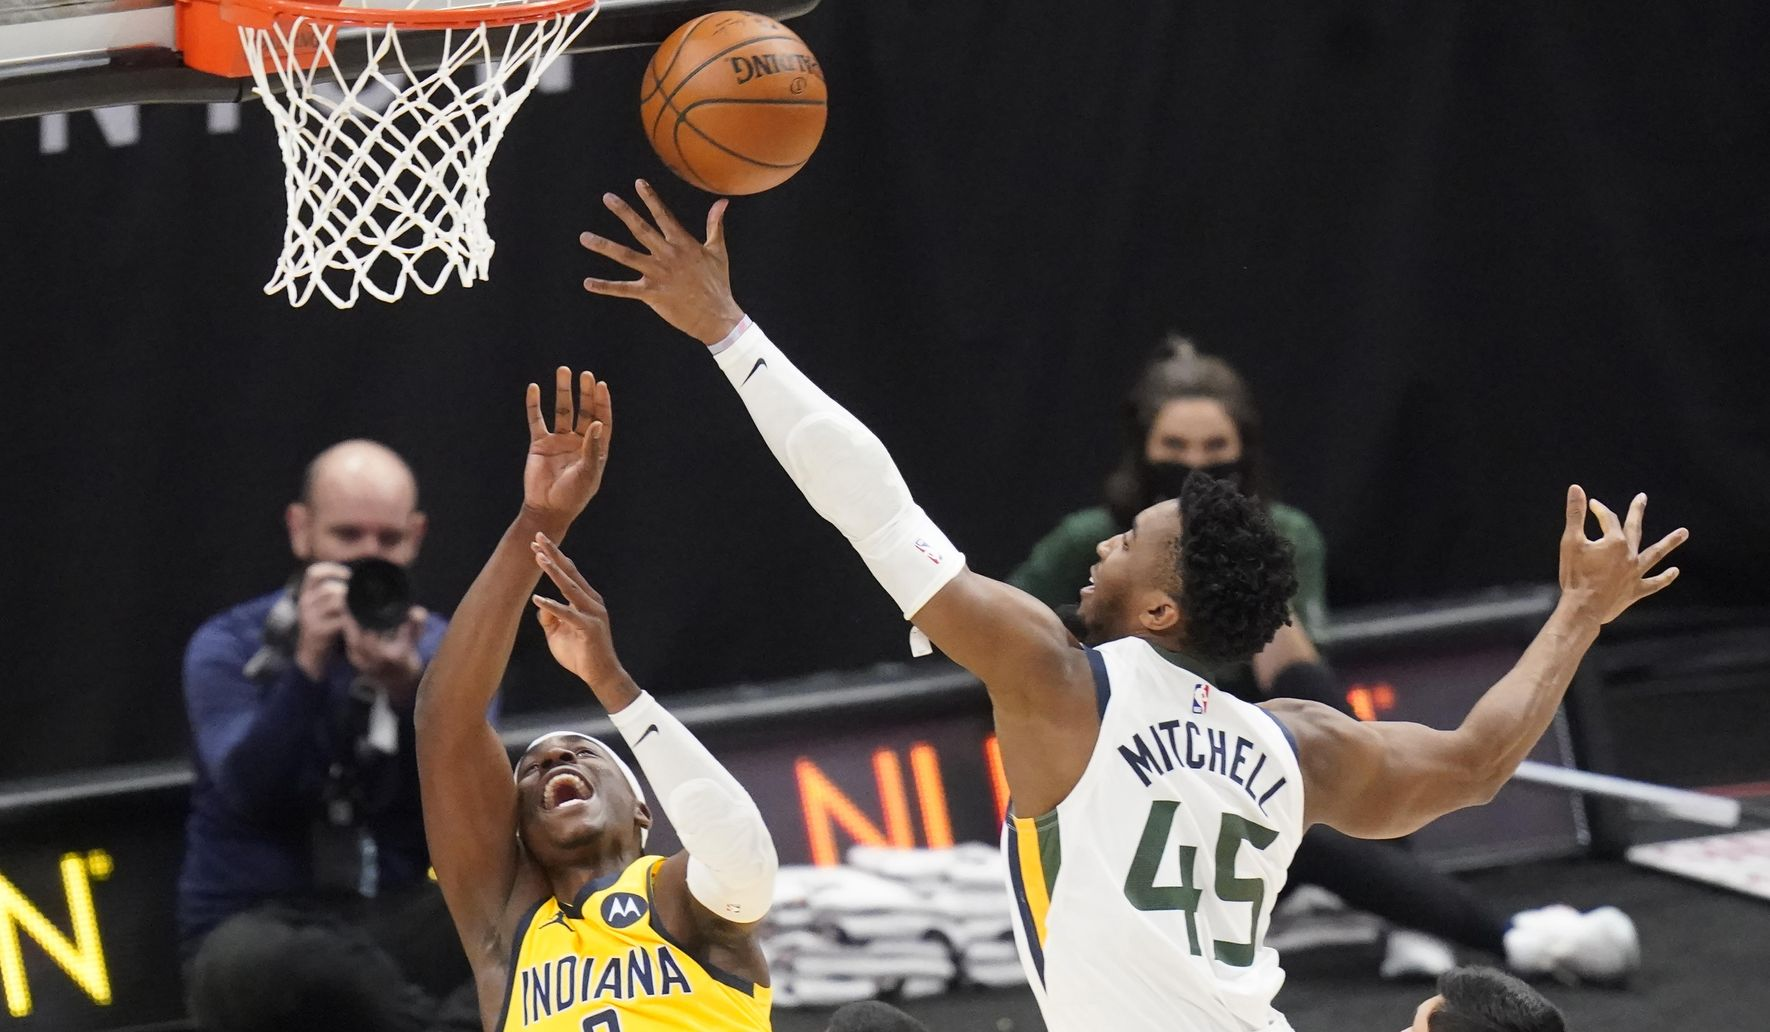 Pacers_jazz_basketall_15151_c0-226-5400-3374_s1770x1032